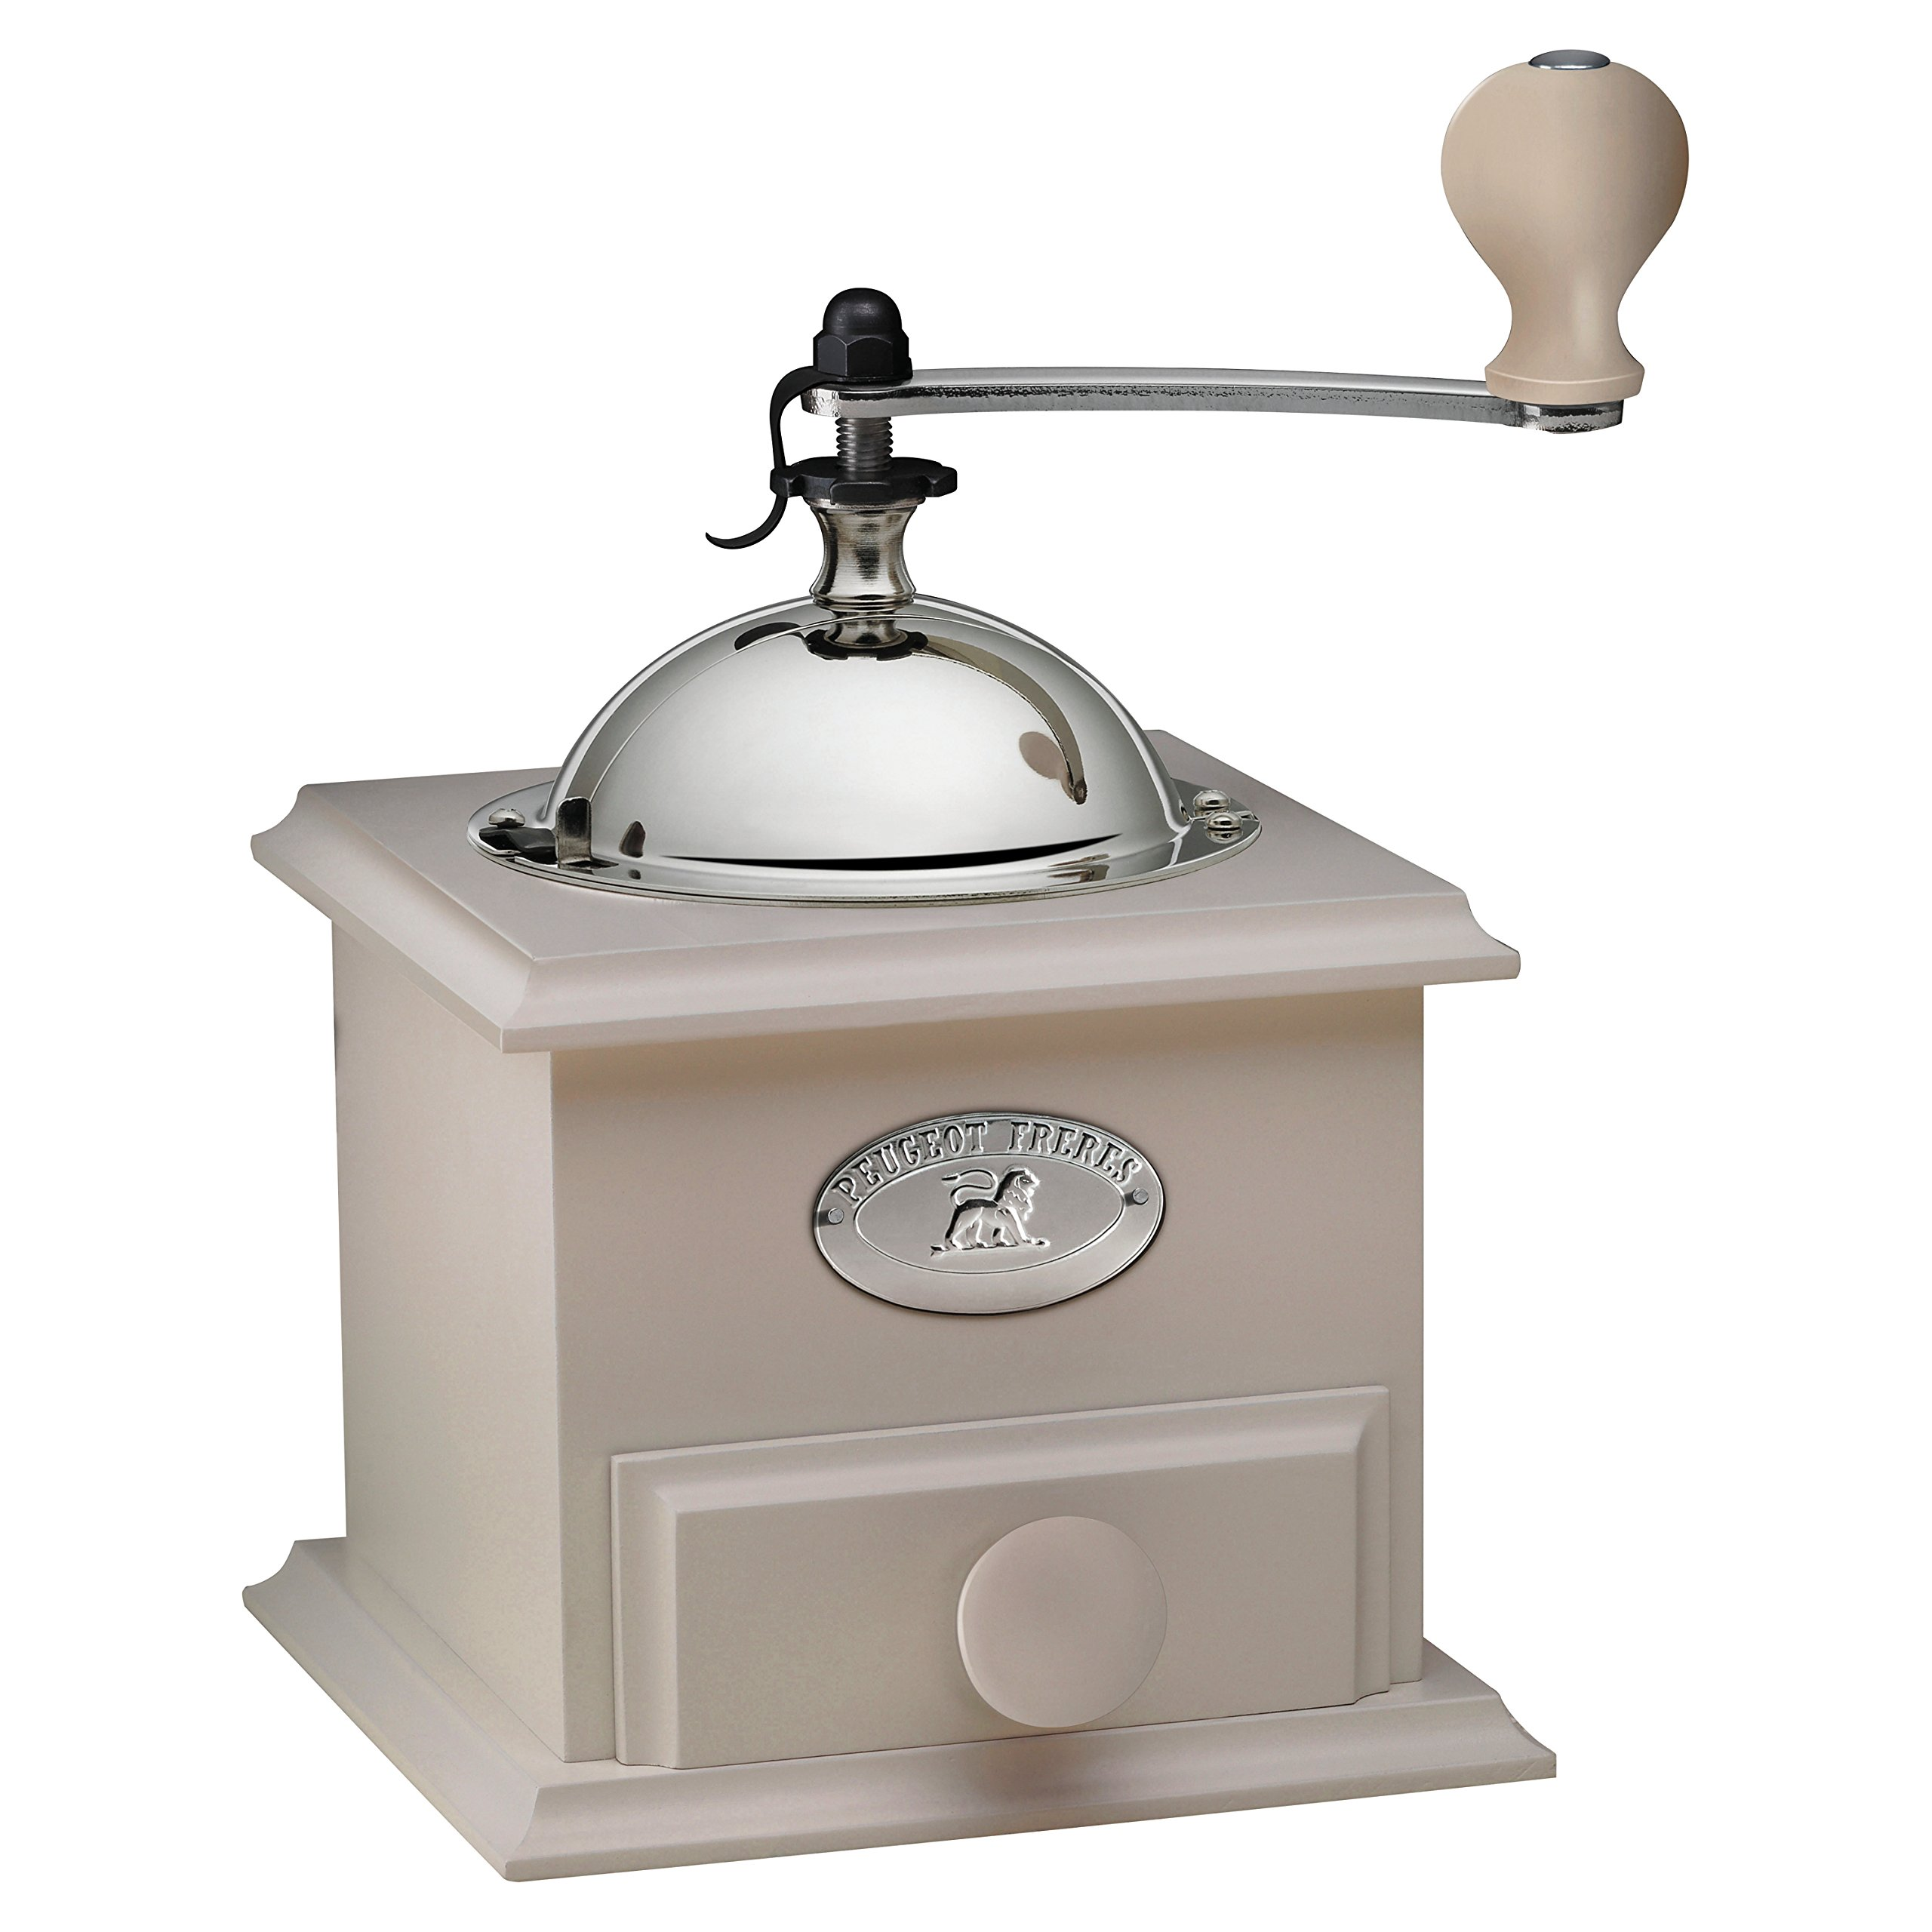 Peugeot 31176 Cottage Coffee Mill, 8-1/4'' x 5'' x 5'', Ivory